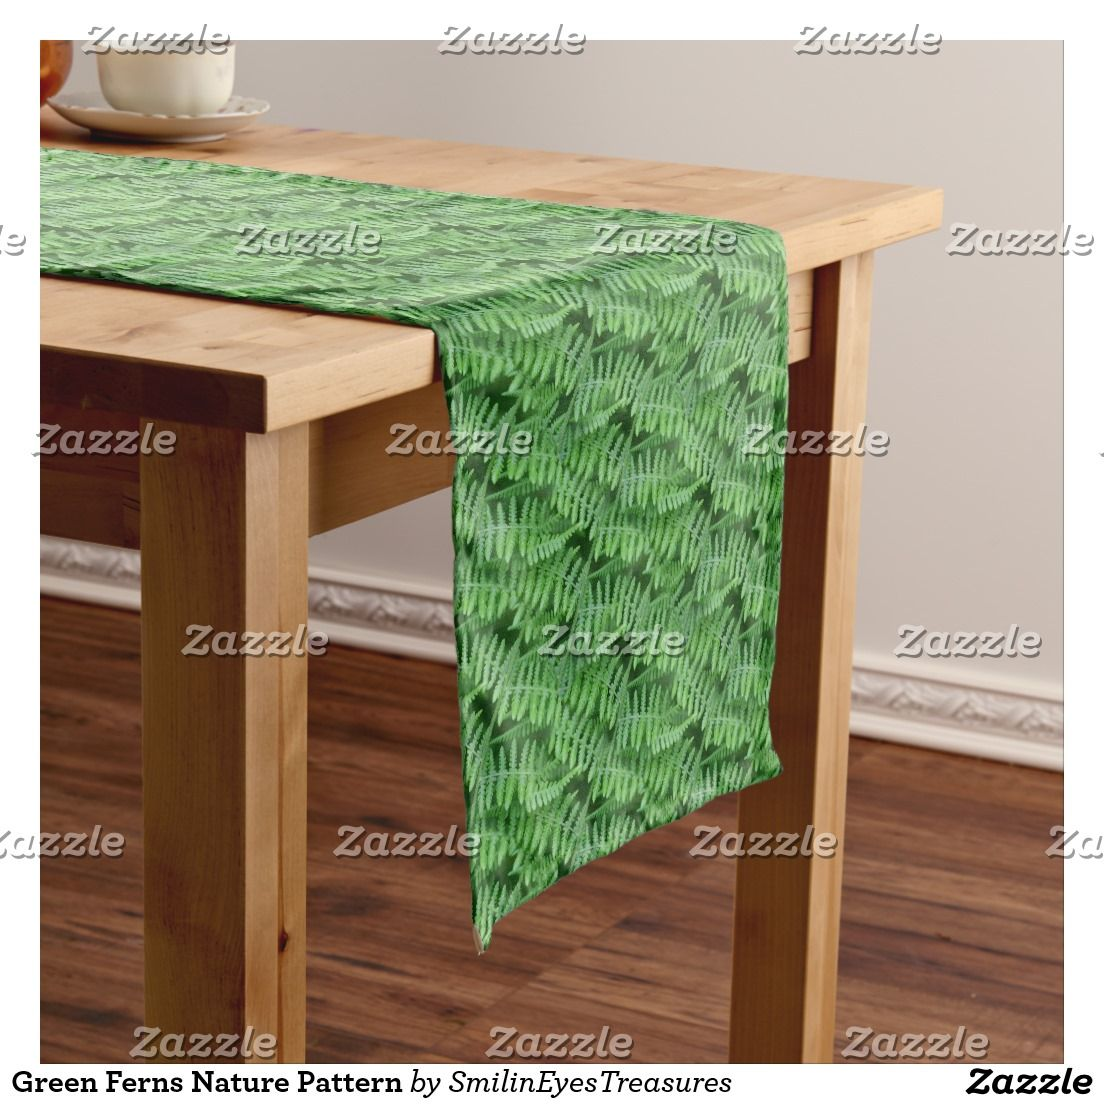 Green Ferns Nature Pattern Short Table Runner at Smilin' Eyes Treasures on Zazzle.